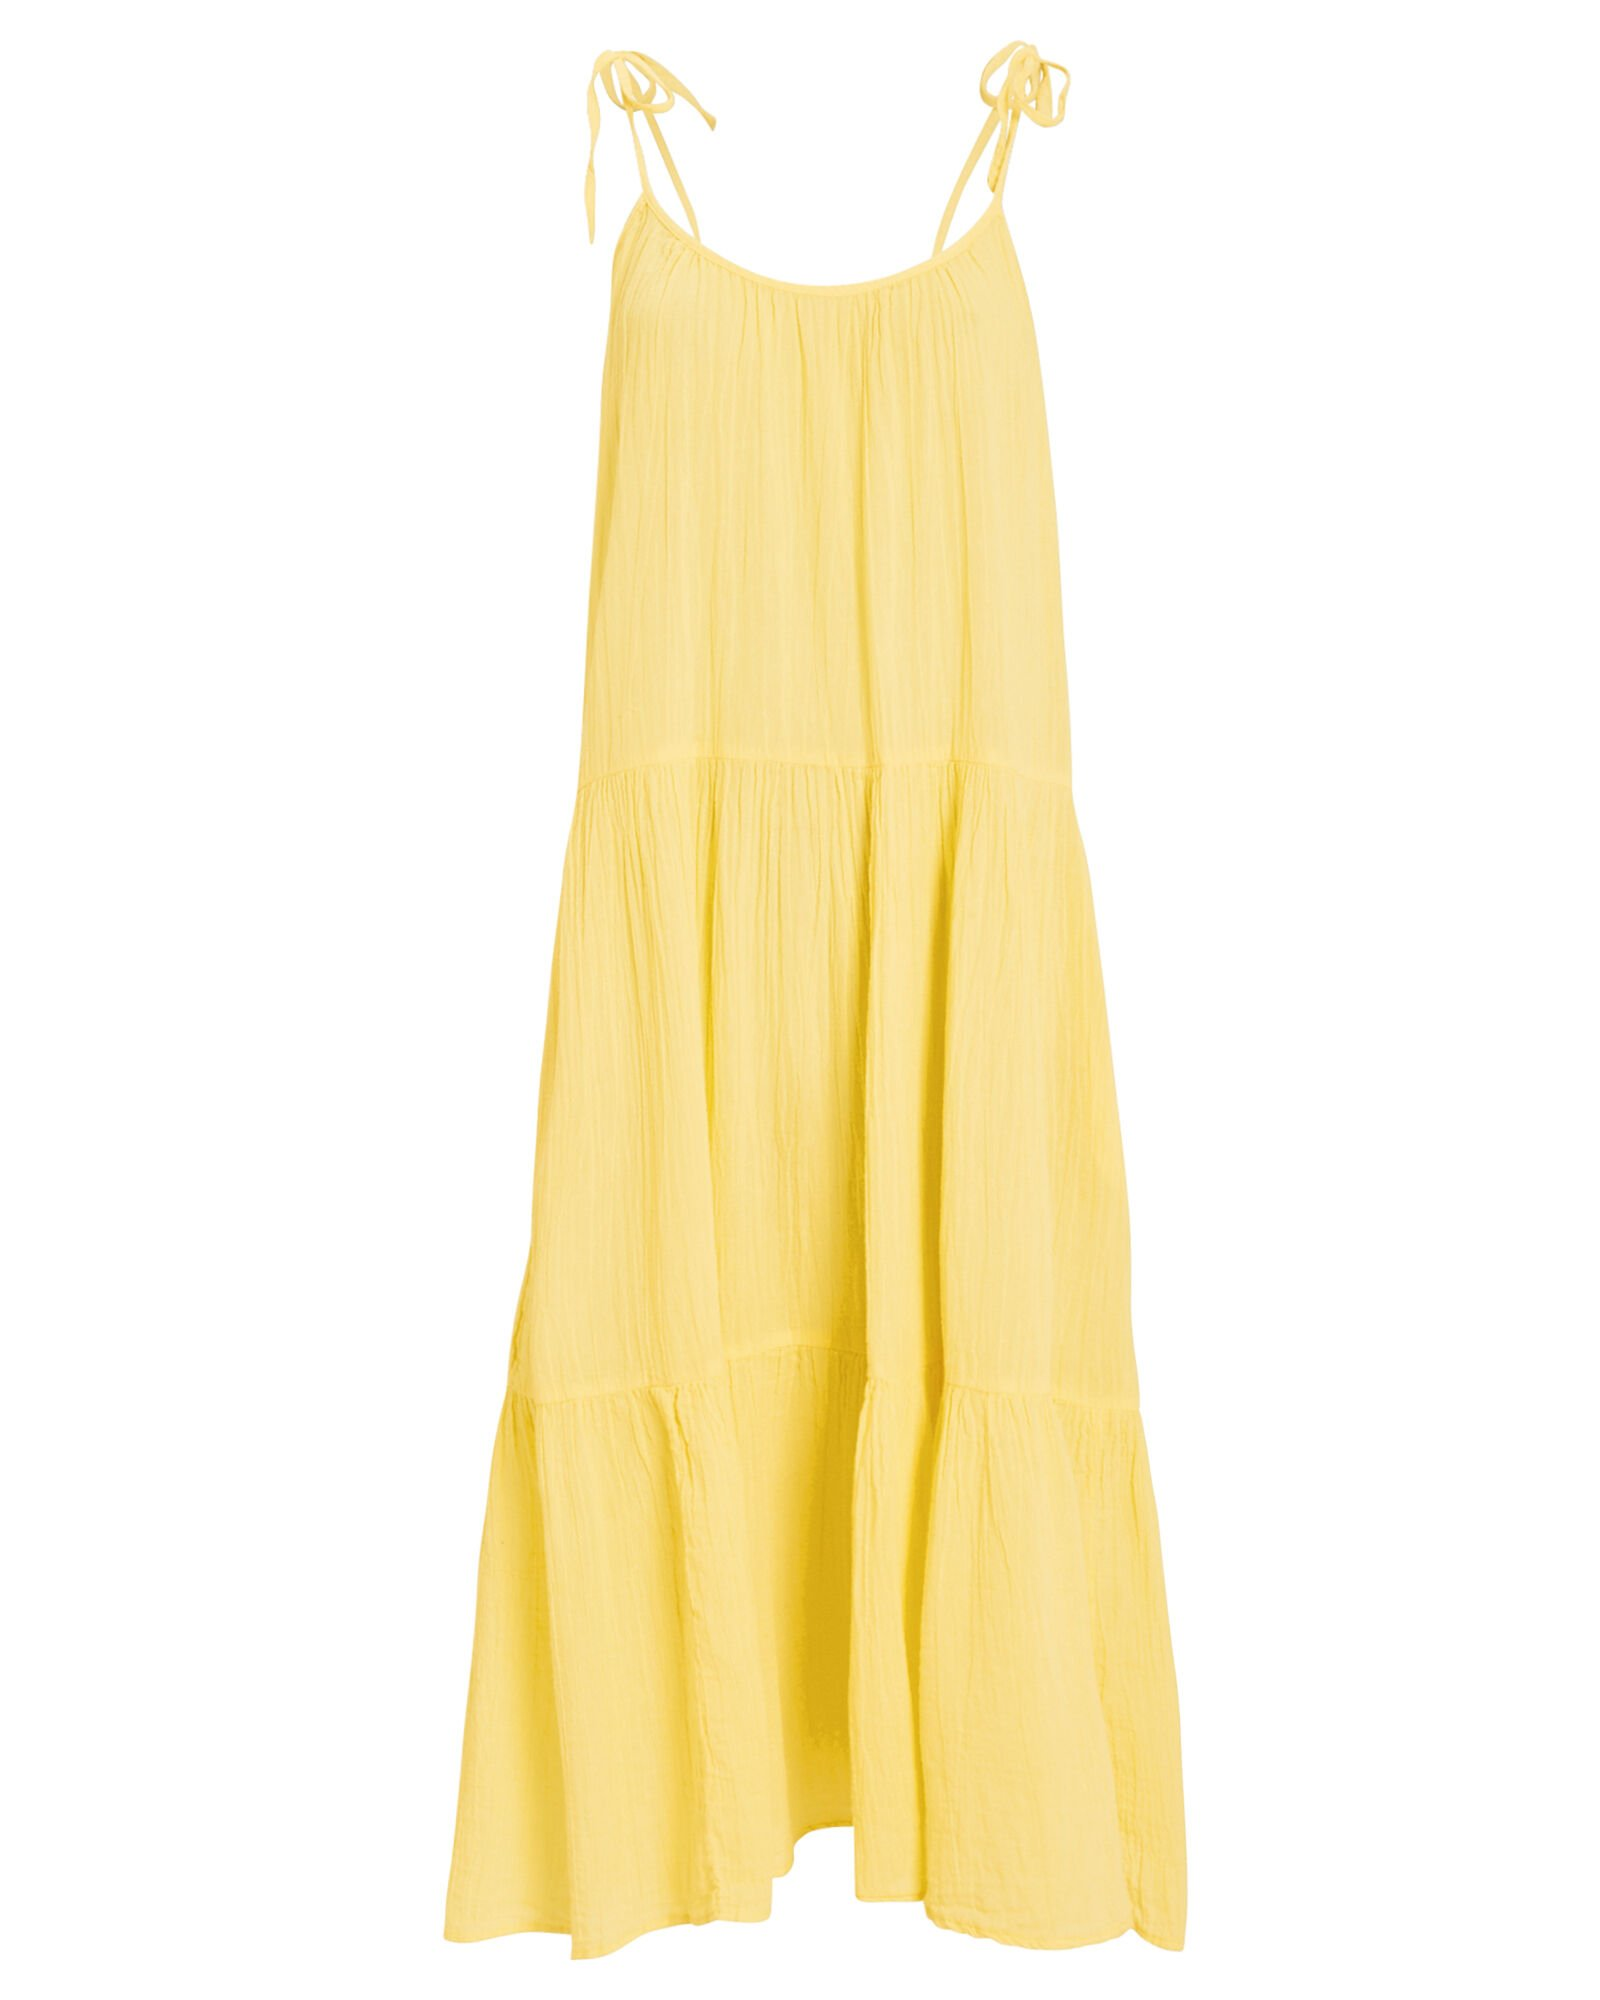 Daisy Tiered Tie Strap Dress, YELLOW, hi-res